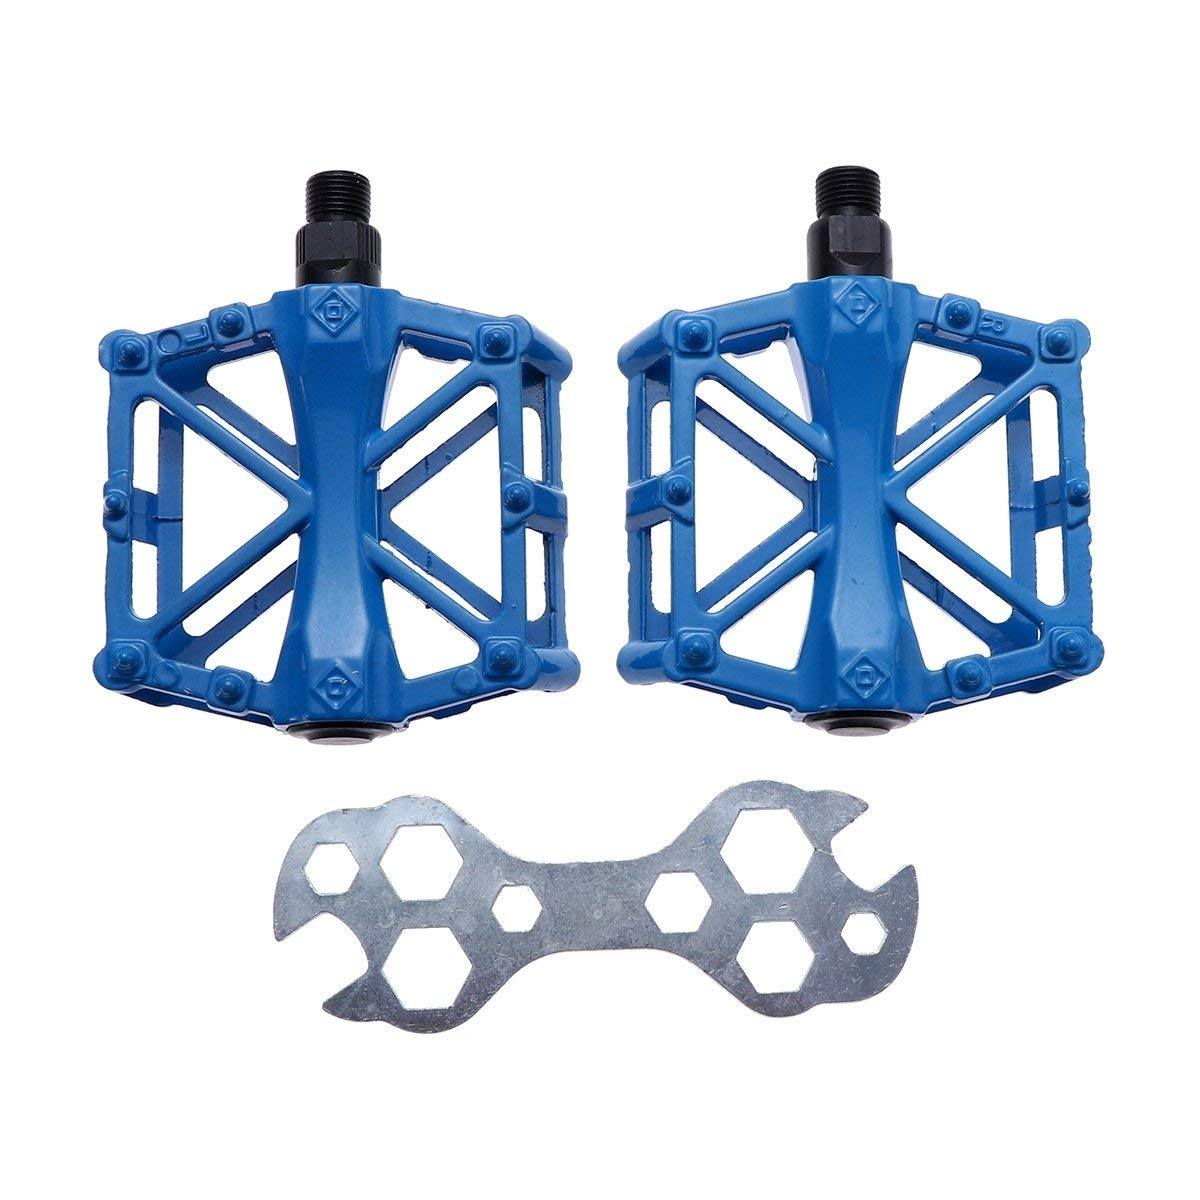 VORCOOL 1 Pair of MTB Bicycle Pedals Fixed Gear Anti-Slip CNC Riding Pedal Mountain Bike Pedal Cycling Sealed Bearing Pedals BMX Road Bike Folding Bike Bicycle Accessories (Blue)